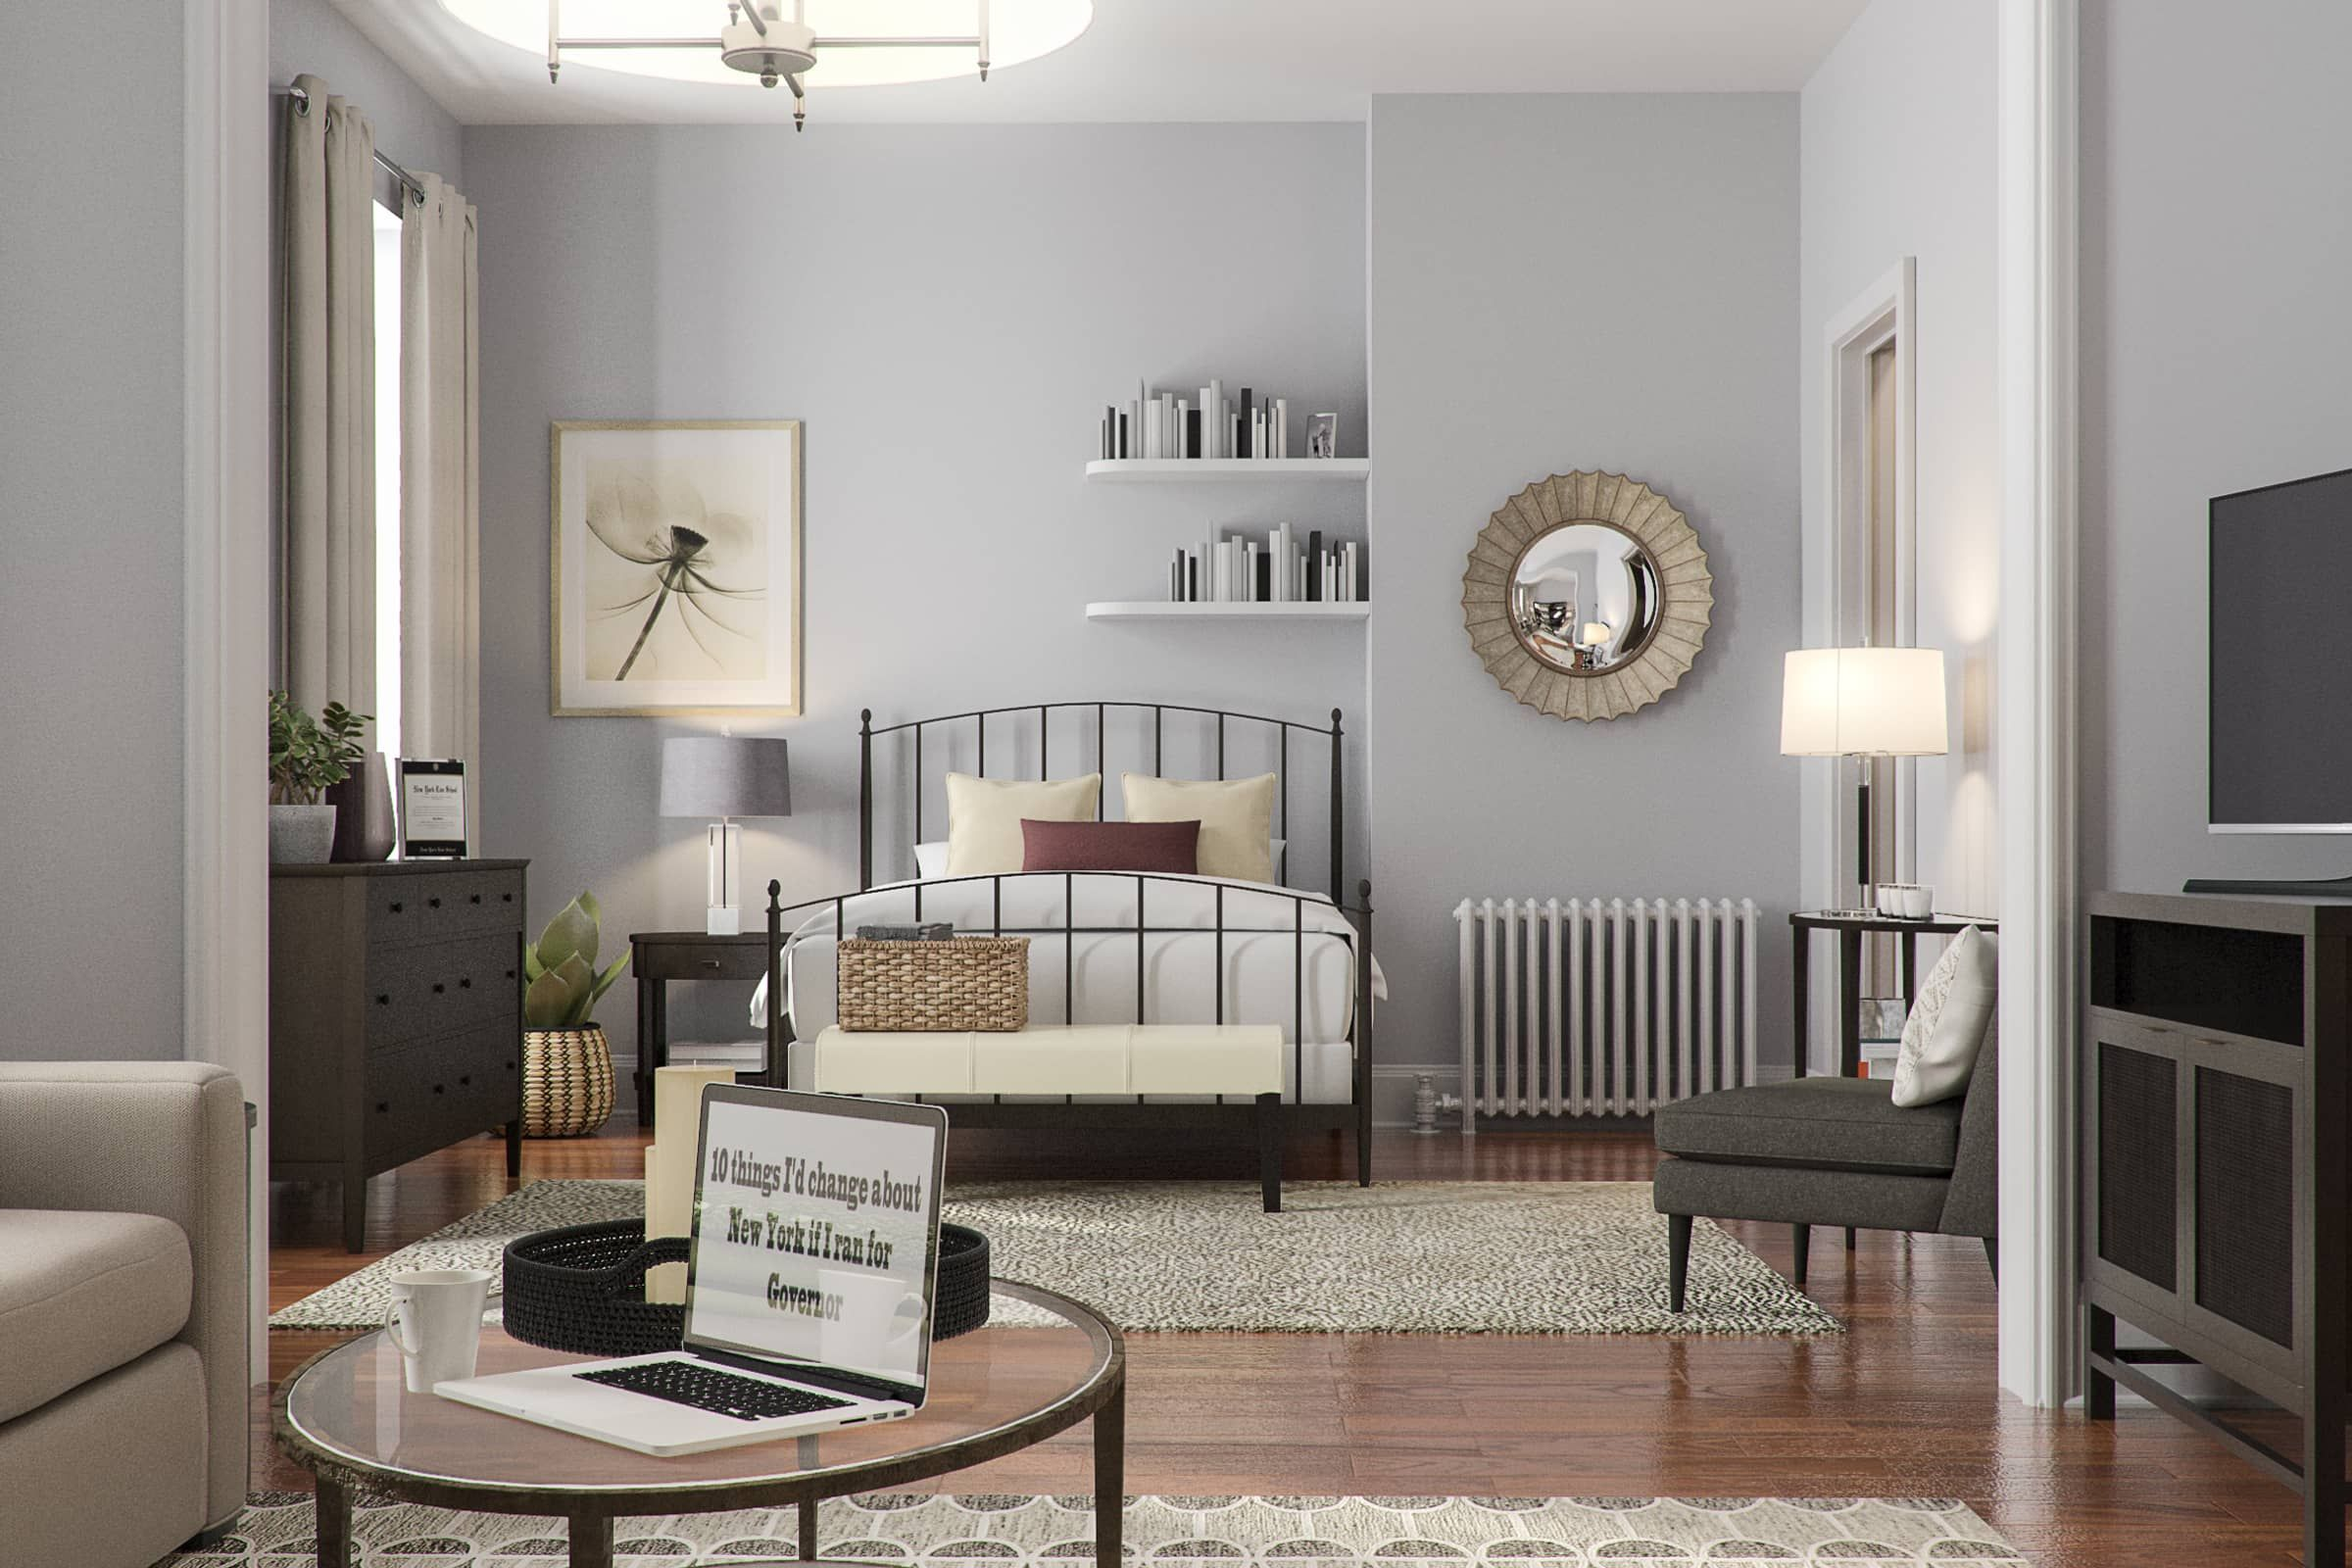 Here's What Carrie Bradshaw's Apartment Would Look Like in